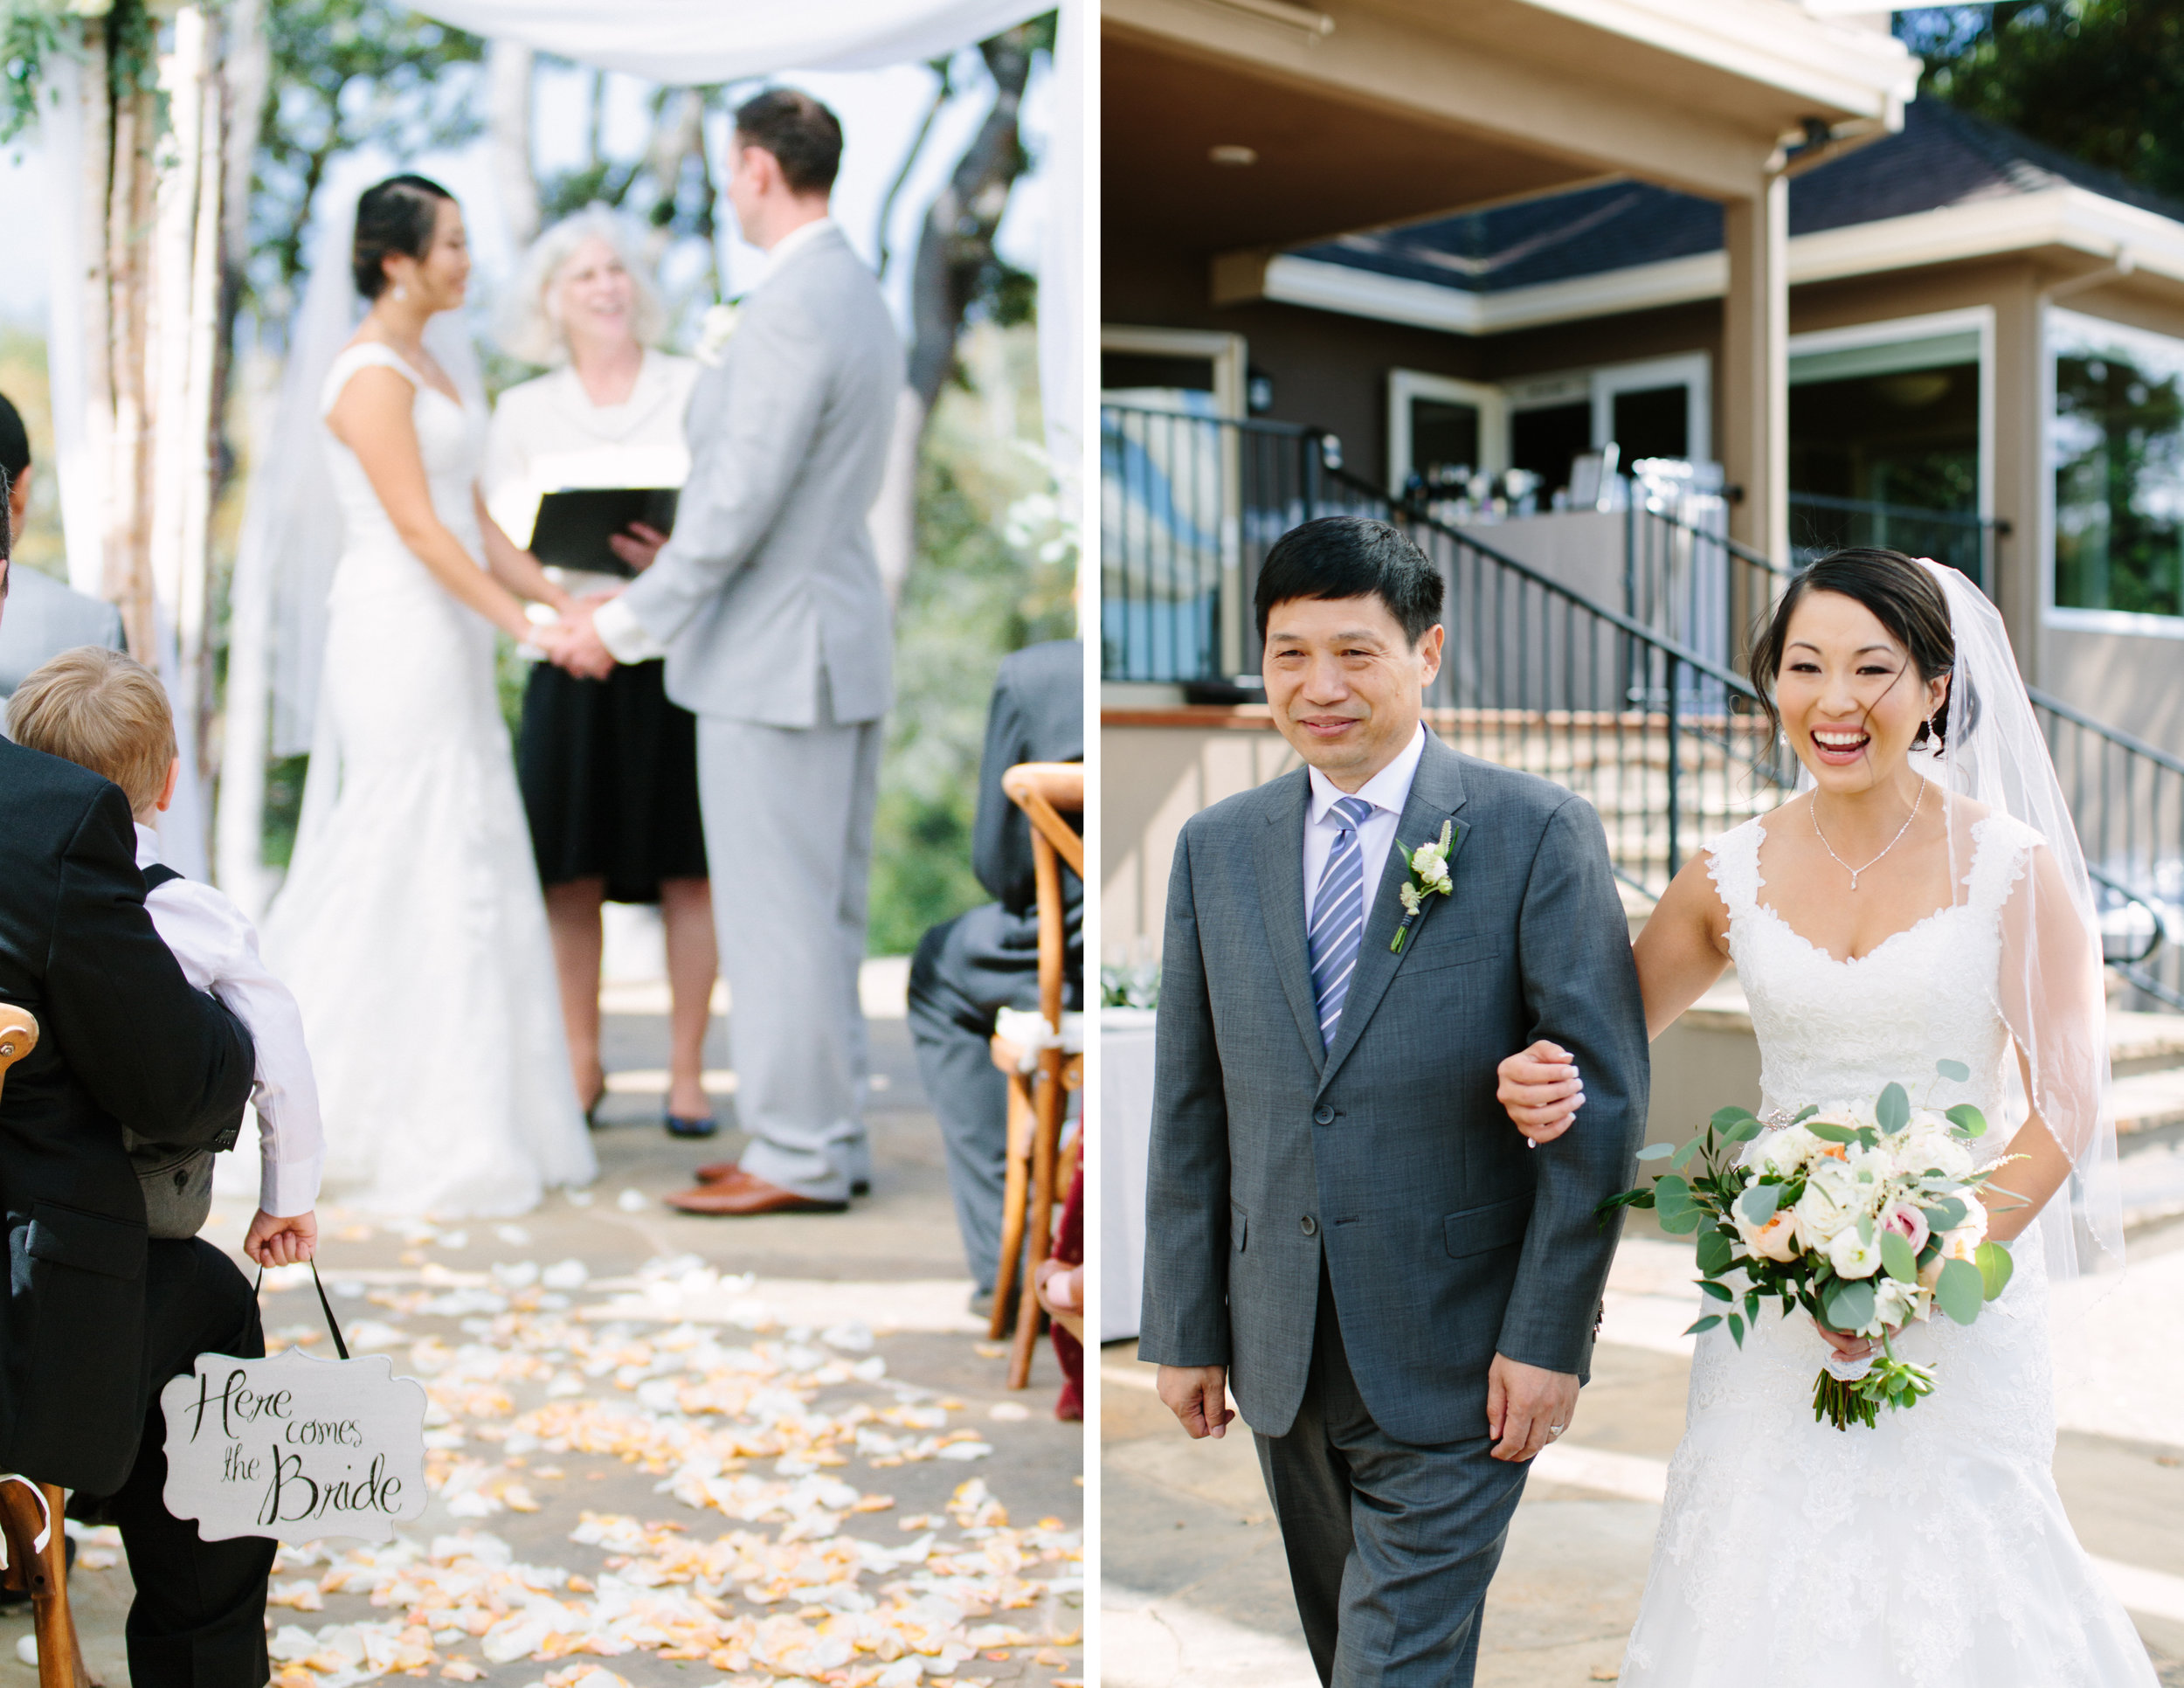 sonoma country wedding 4.jpg